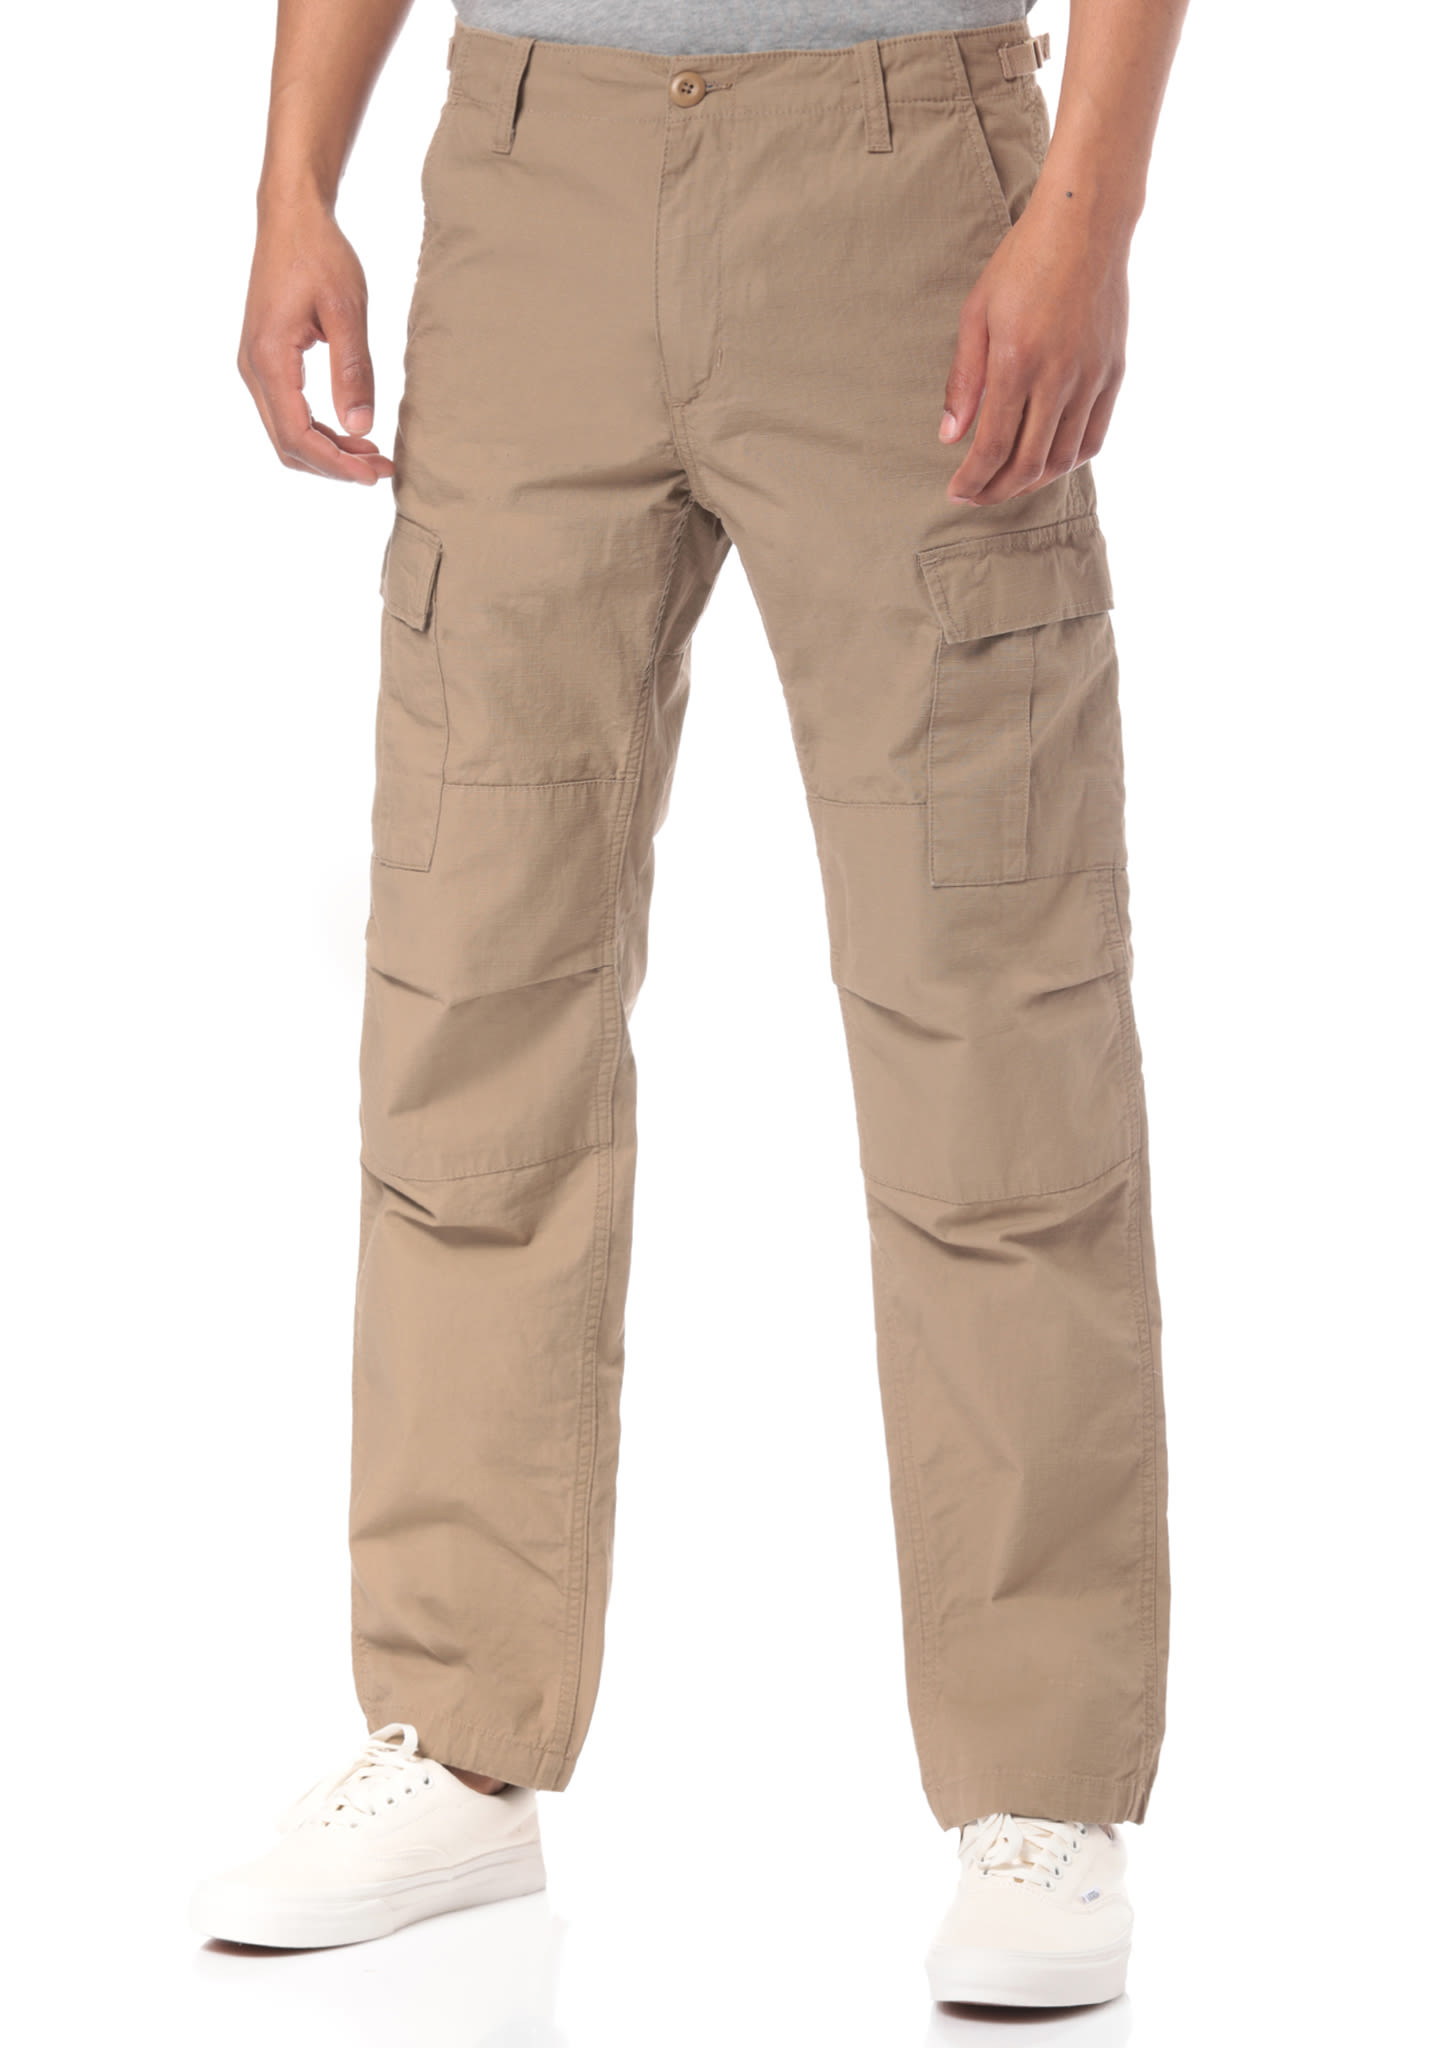 bf8c0044d4 carhartt WIP Aviation - Cargo Pants for Men - Brown - Planet Sports